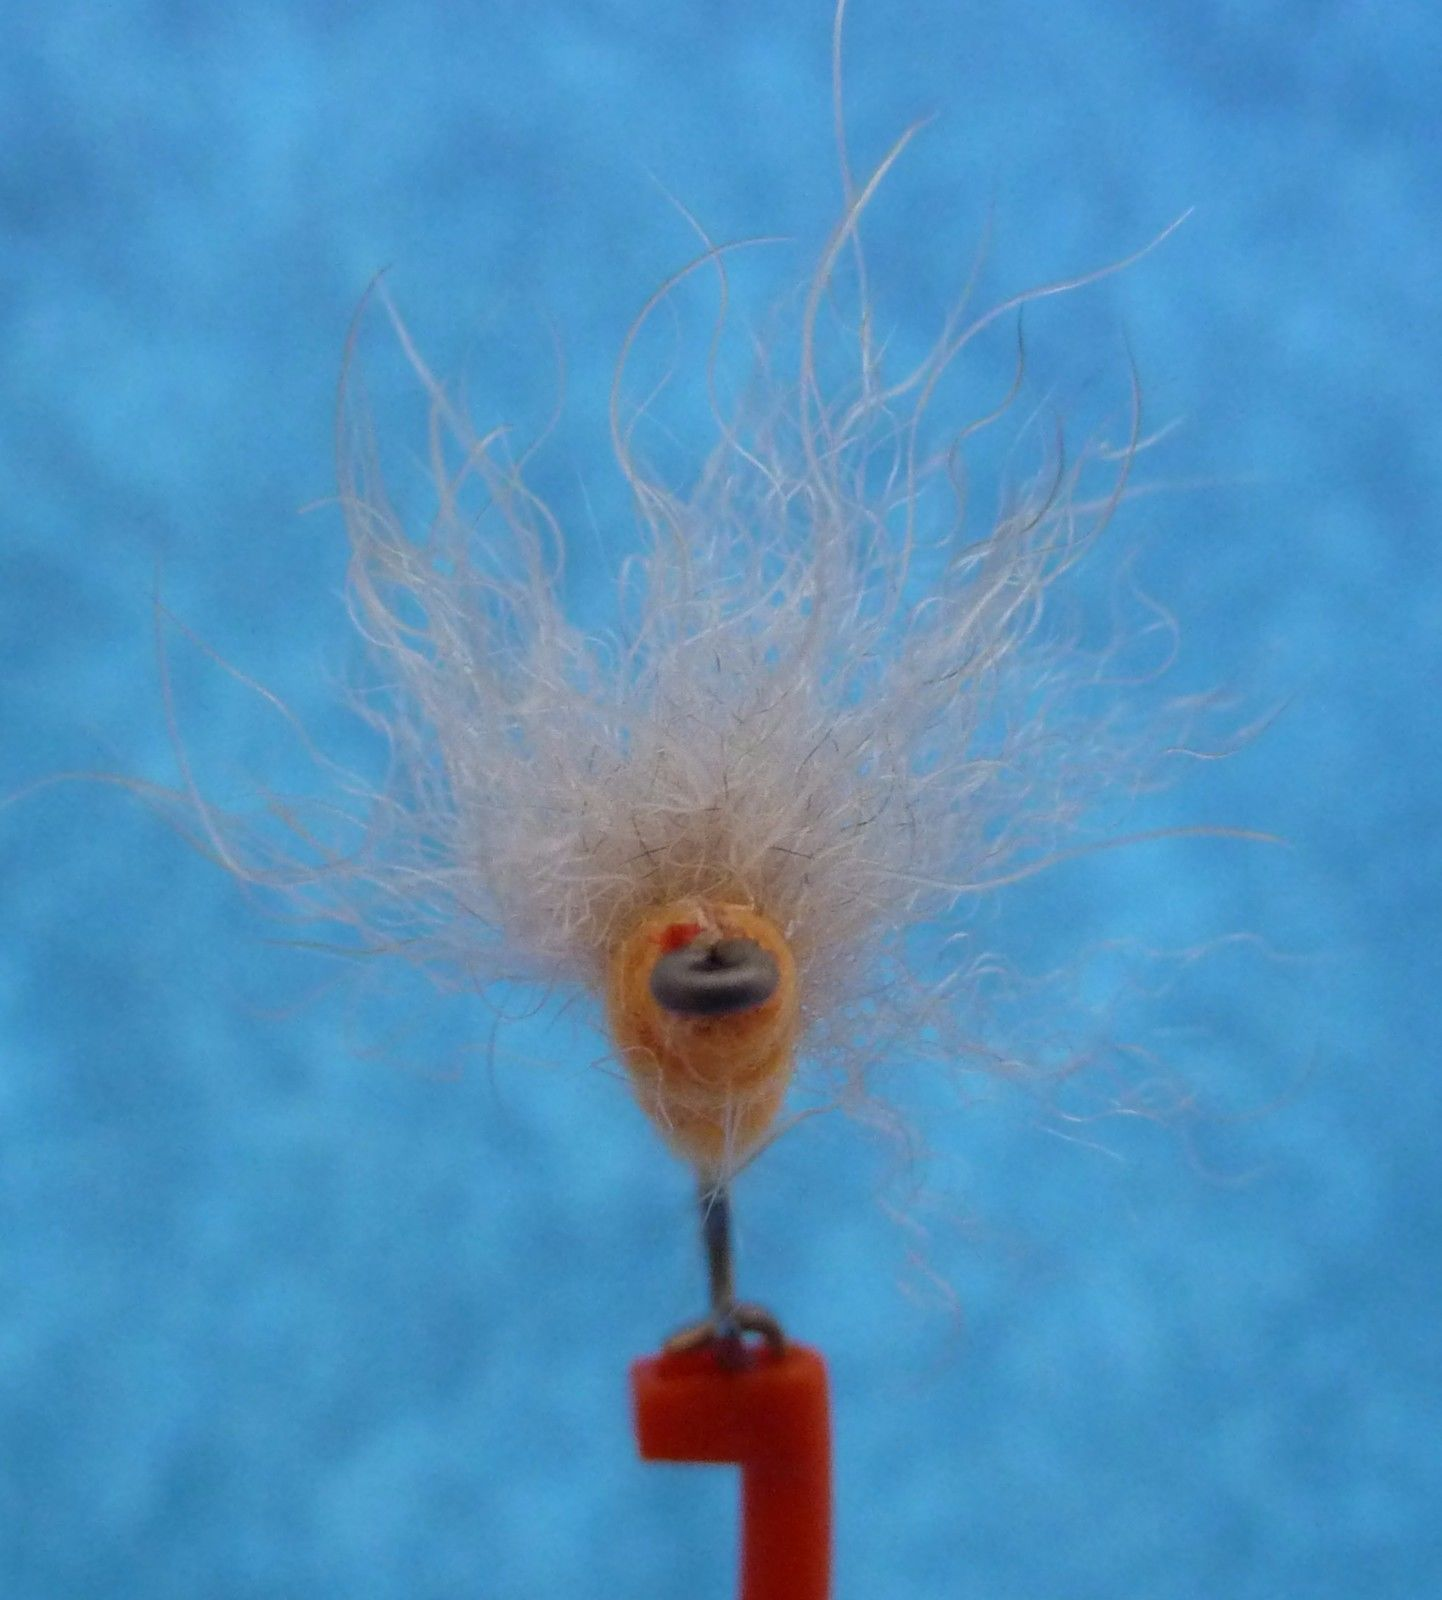 14 16 or 18 * Trout Fly 1//4 dozen Sulphur Usual Dry Flies #12 per 3